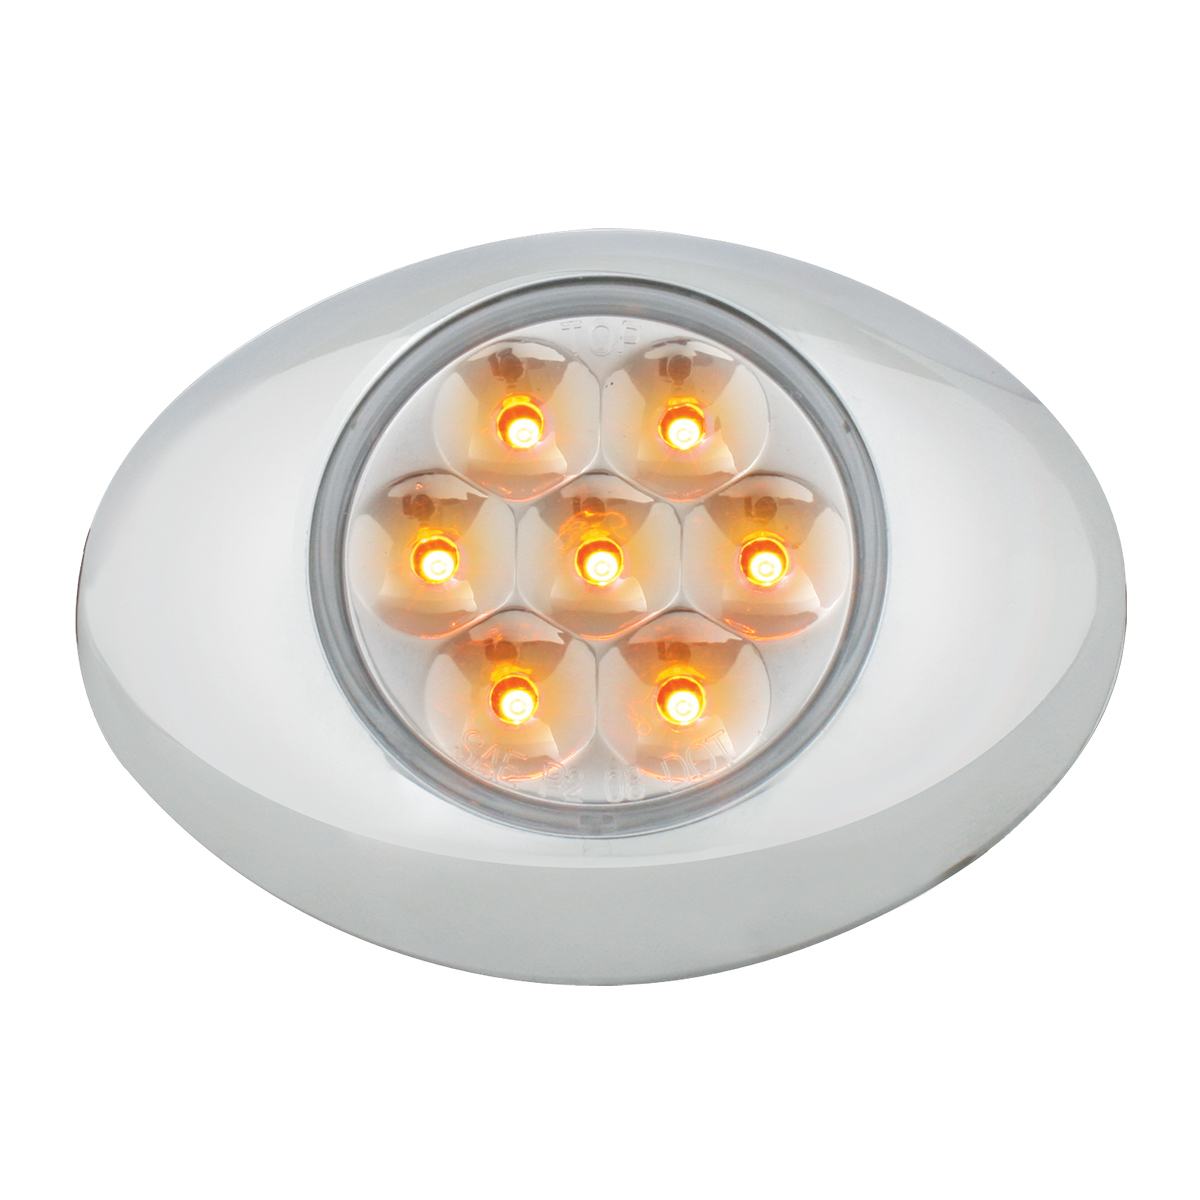 76236 Small Low Profile Surface Mount Pearl LED Marker & Turn Light w/ Chrome Bezel